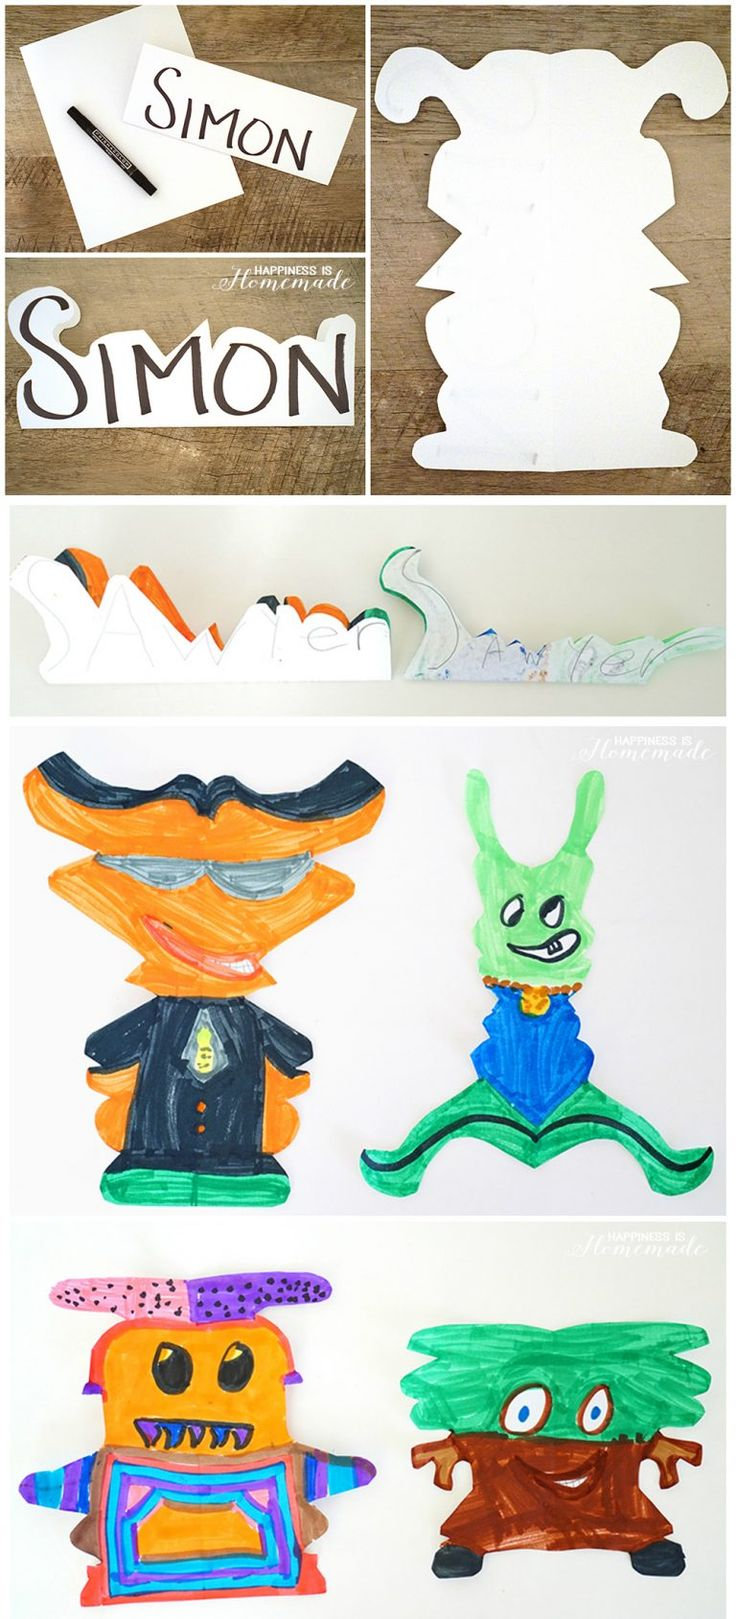 Kids Art - Make Alien Creature Monsters from Your Name